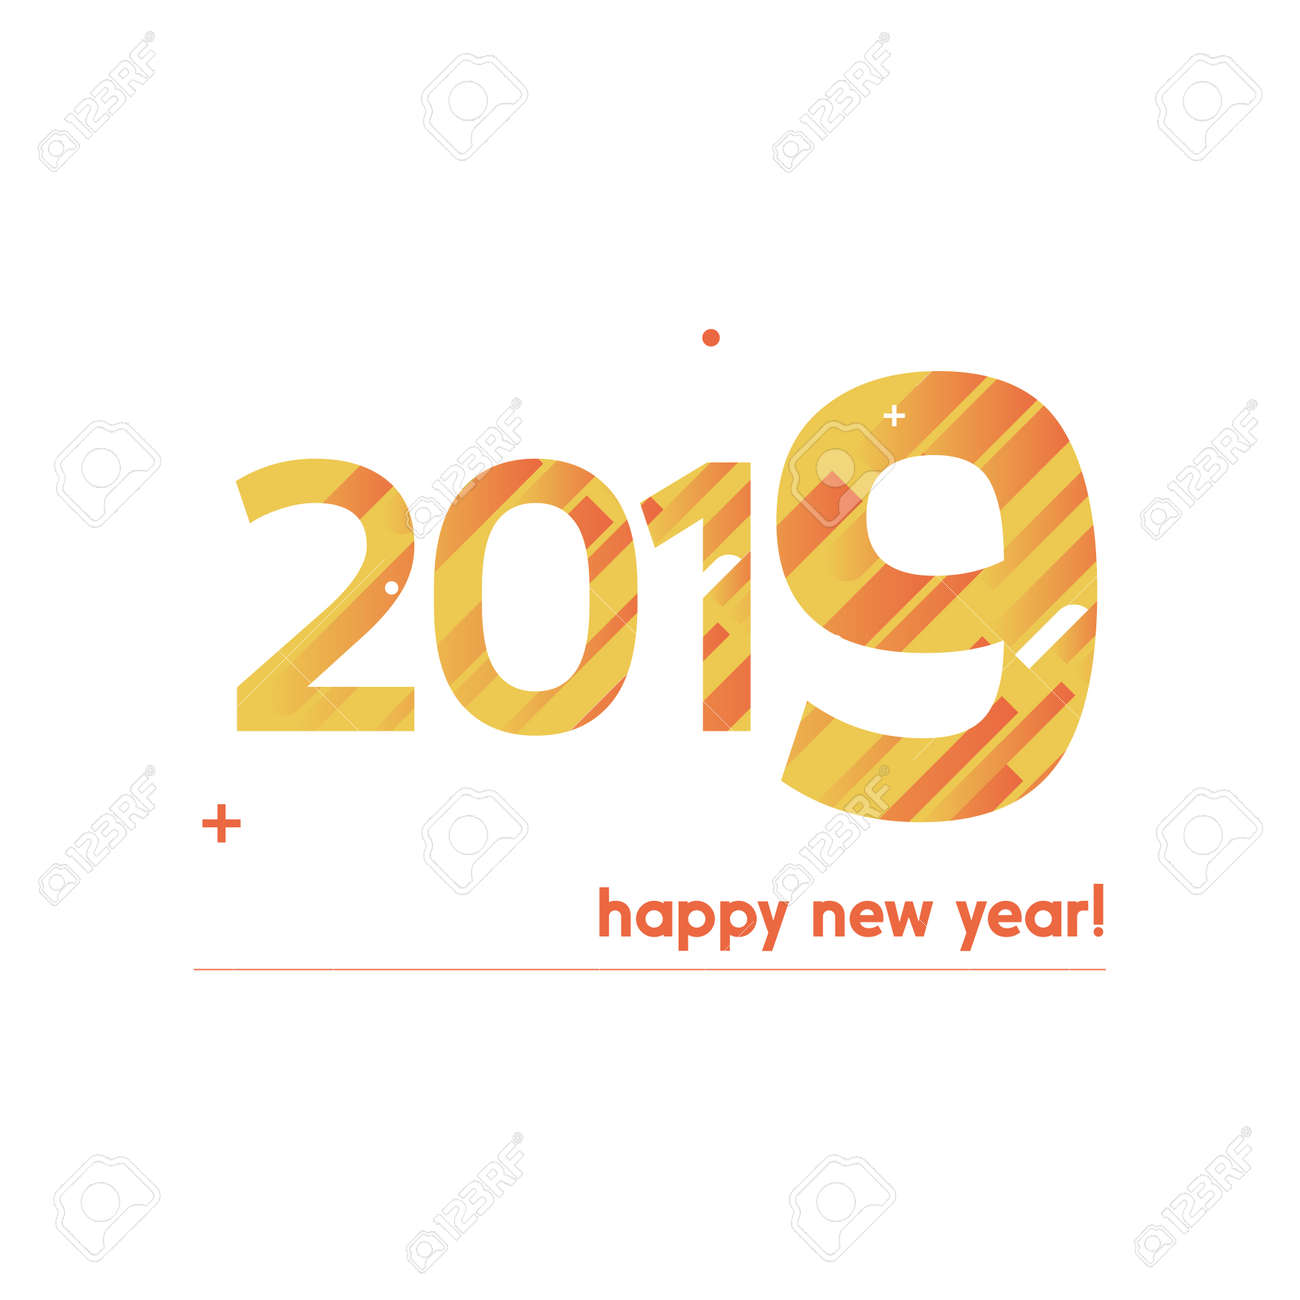 Happy New Year 2019 Vector Illustration - Bold Text With Creative ...